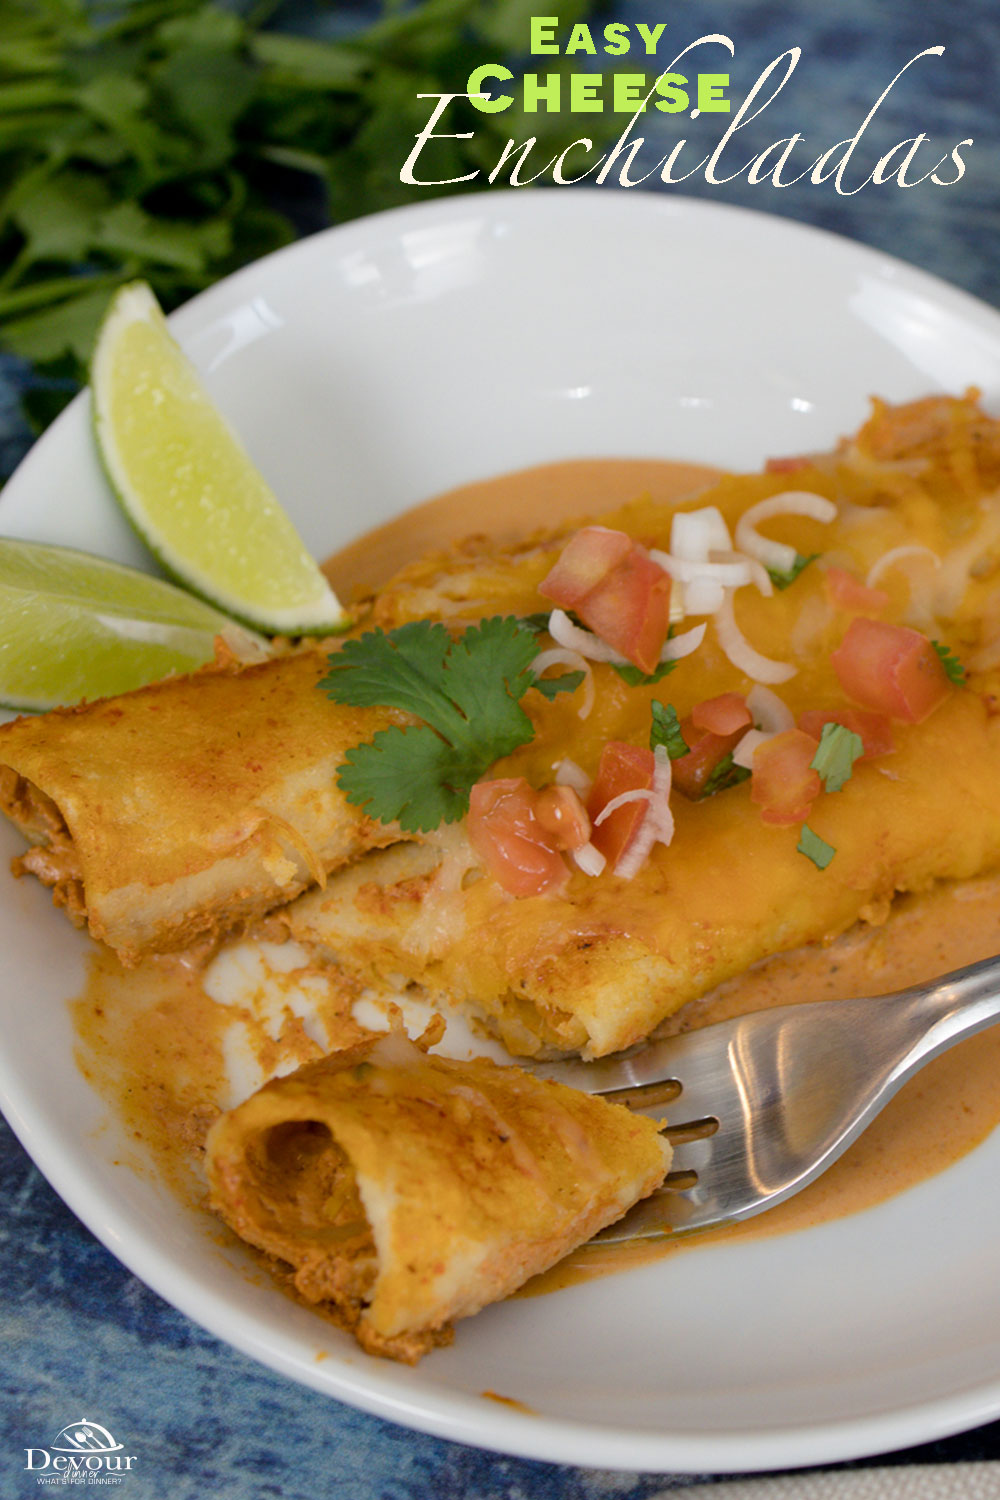 Creamy and Delicious Red Cheese Enchiladas a 30 Minute Meal Recipe. Make with Corn or Flour Tortillas with Make ahead directions and fun Add ins. Top with fresh pico, limes, avocado and more. Spice up with diced Chilies and Jalapeños. Always a great recipe. #devourdinner #devourpower #FreakyFridayRecipes #bonappetitmag #thekitchn #recipeoftheday #americastestkitchen #buzzfeedfood #cooksillustrated #foodgawker #bareaders #foodblogfeed #droolclub #makeitdelicious #scrumptiouskitchen